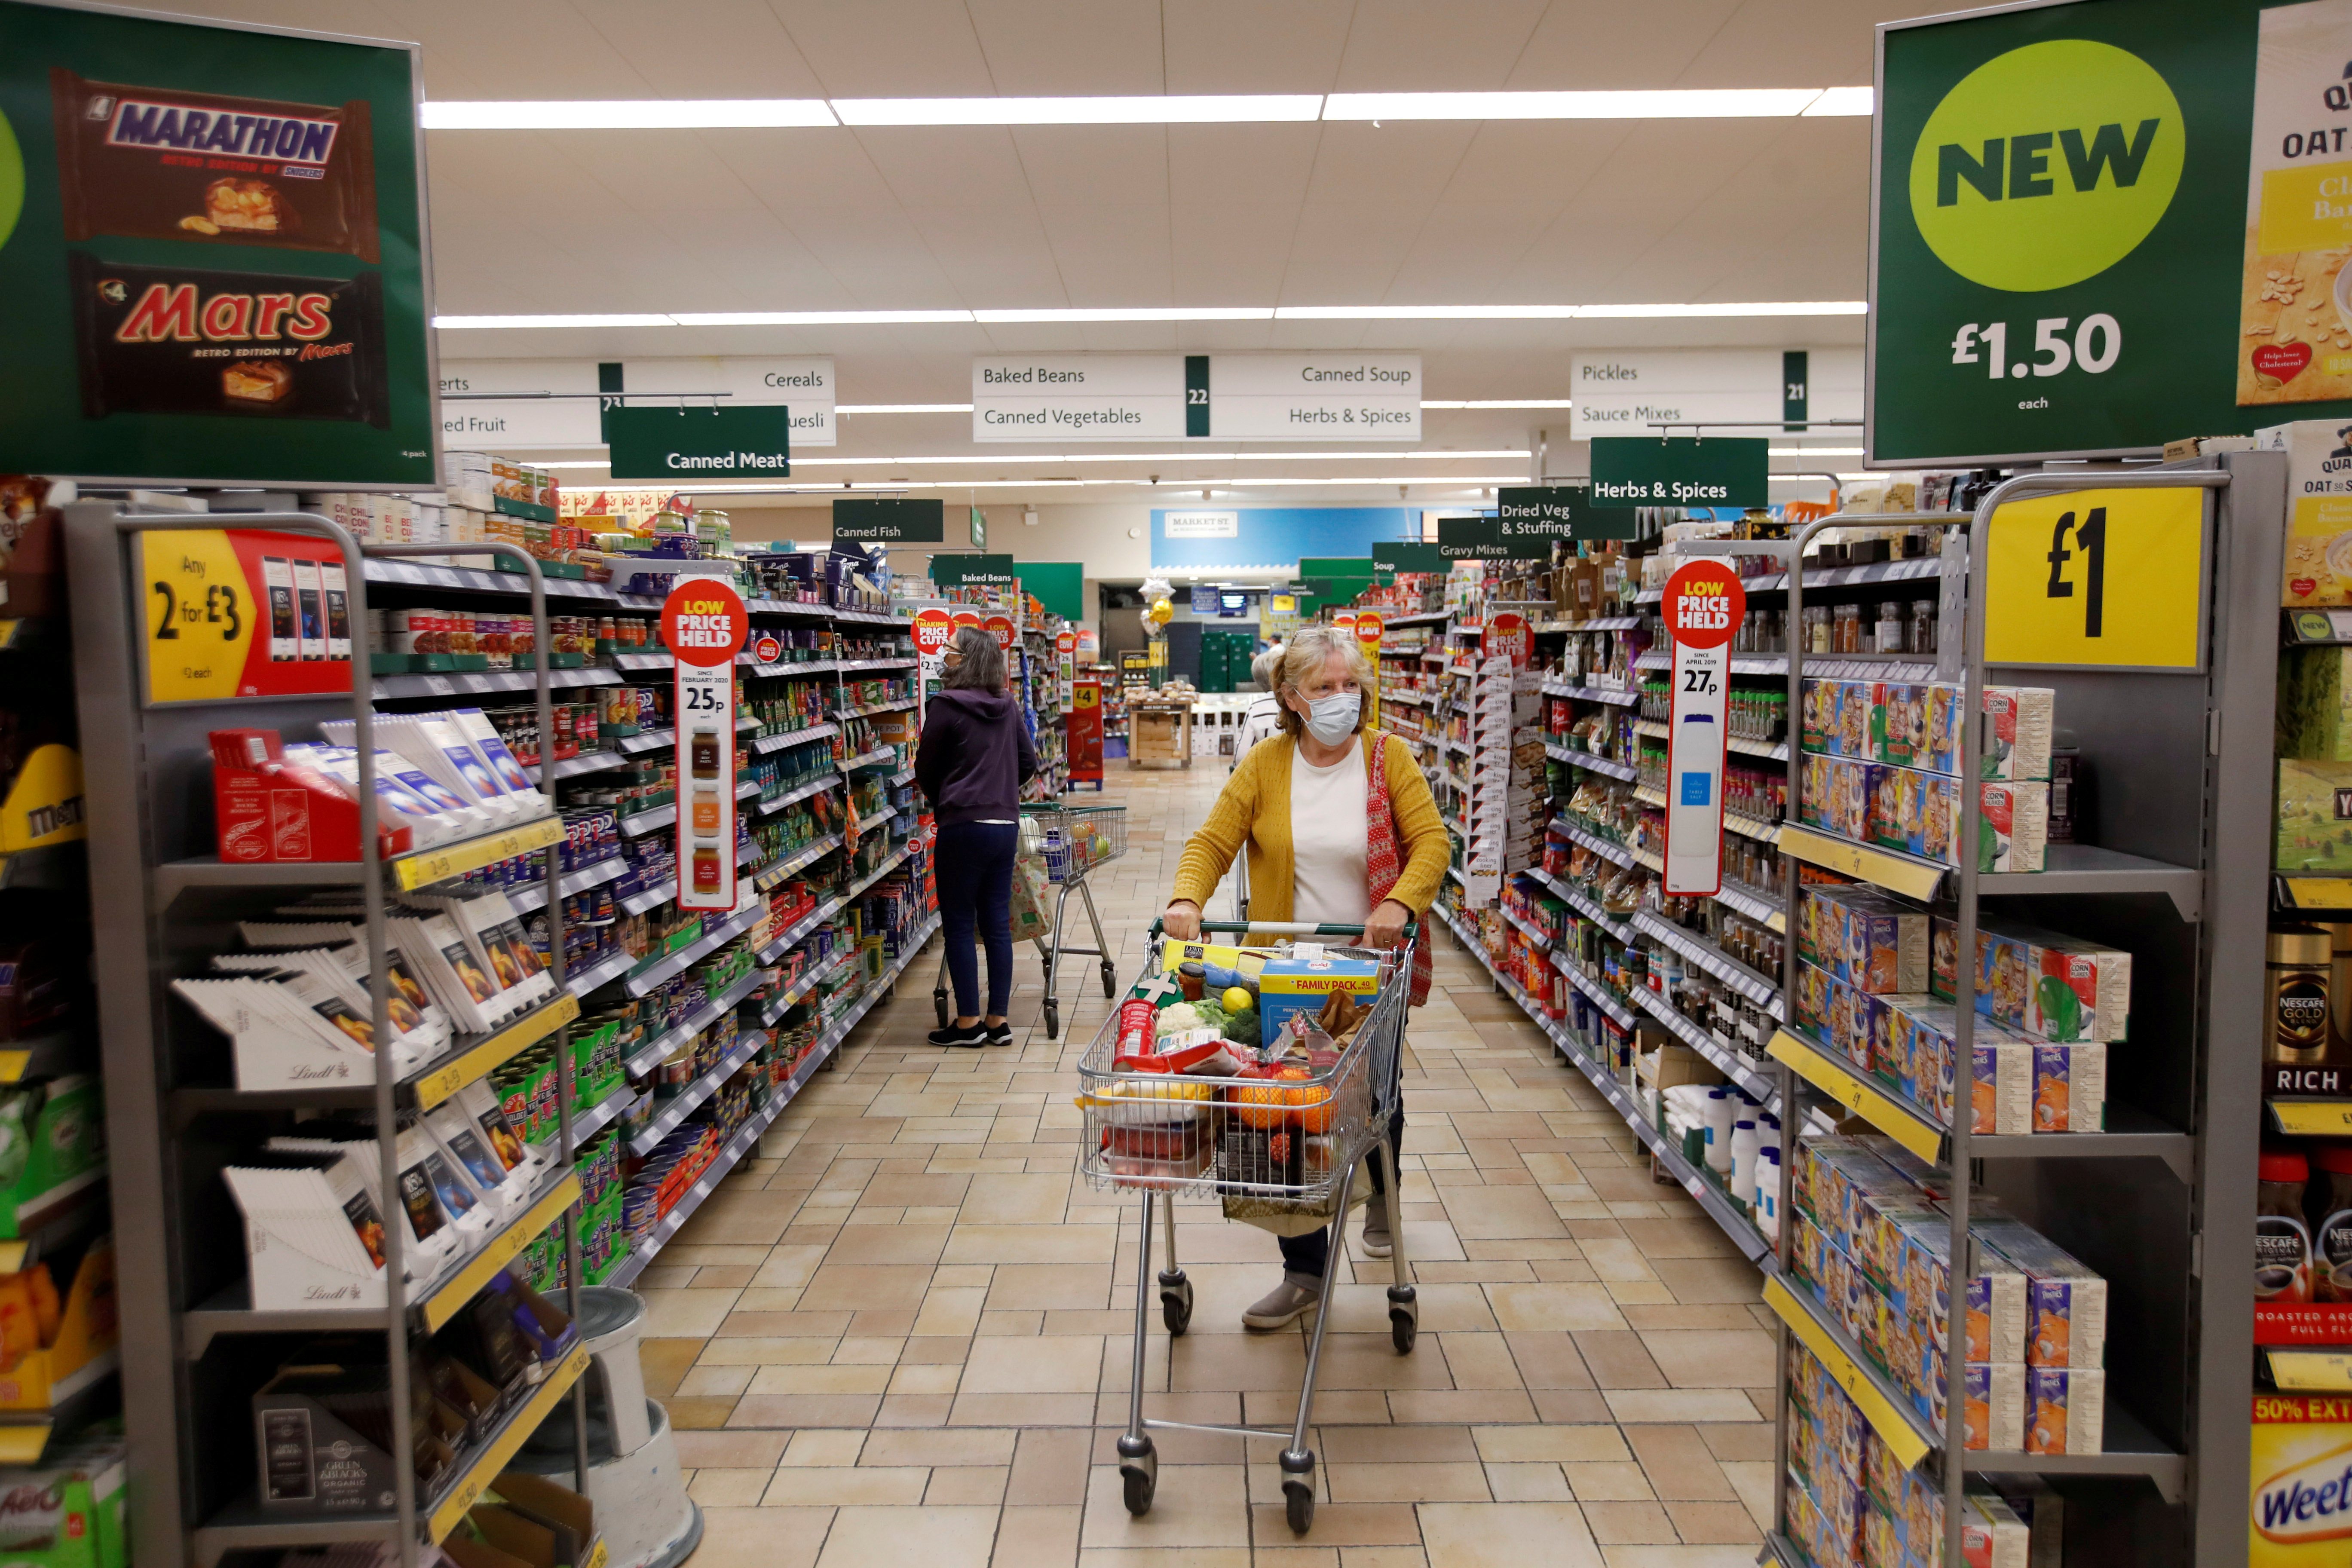 A customer wearing a protective face mask shops at a Morrisons store in St Albans, Britain, September 10, 2020. REUTERS/Peter Cziborra